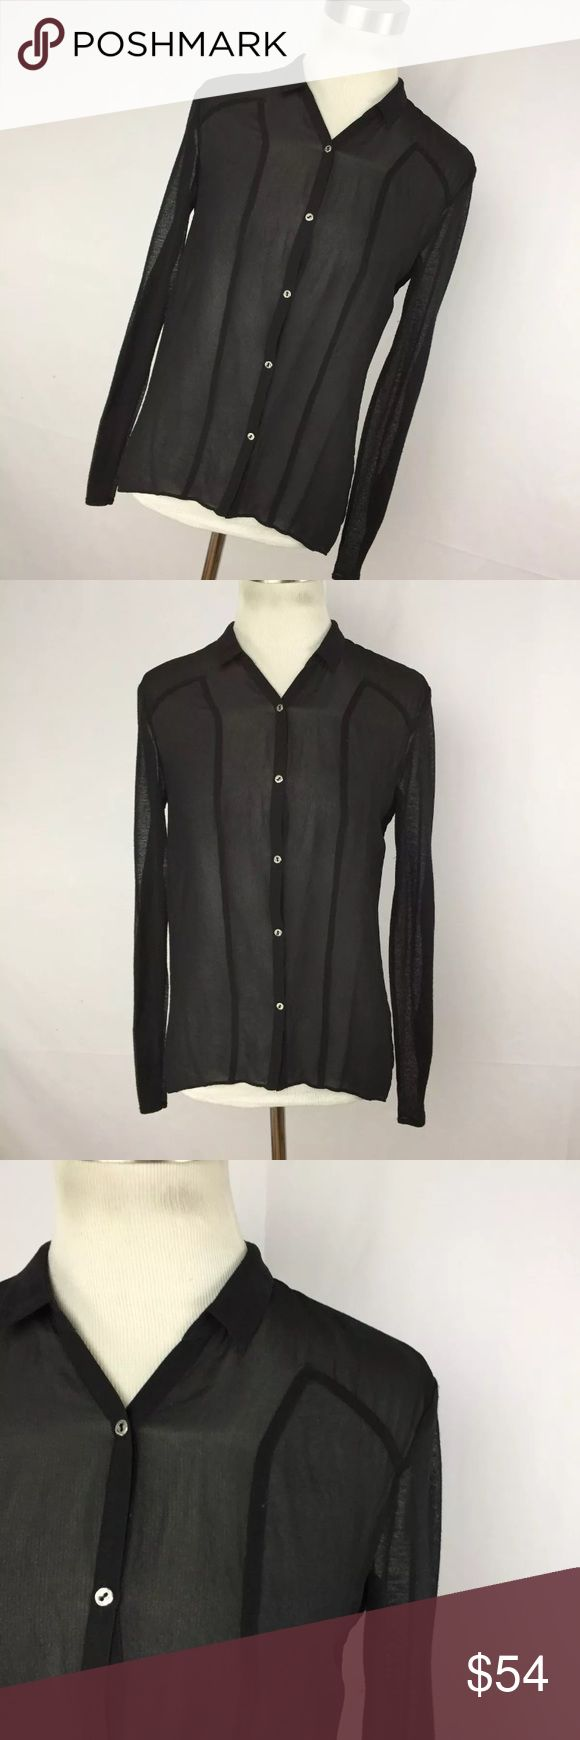 "Helmut Lang P Petite Shirt Top Black Sheer Stretch This is a great sheer button down shirt with long sleeves. Silk stretch blend. Chest measurement  - 34"" Length measurement - 29"" Sleeve Length measurement - 22"". Excellent condition. Smoke free home Helmut Lang Tops Button Down Shirts"